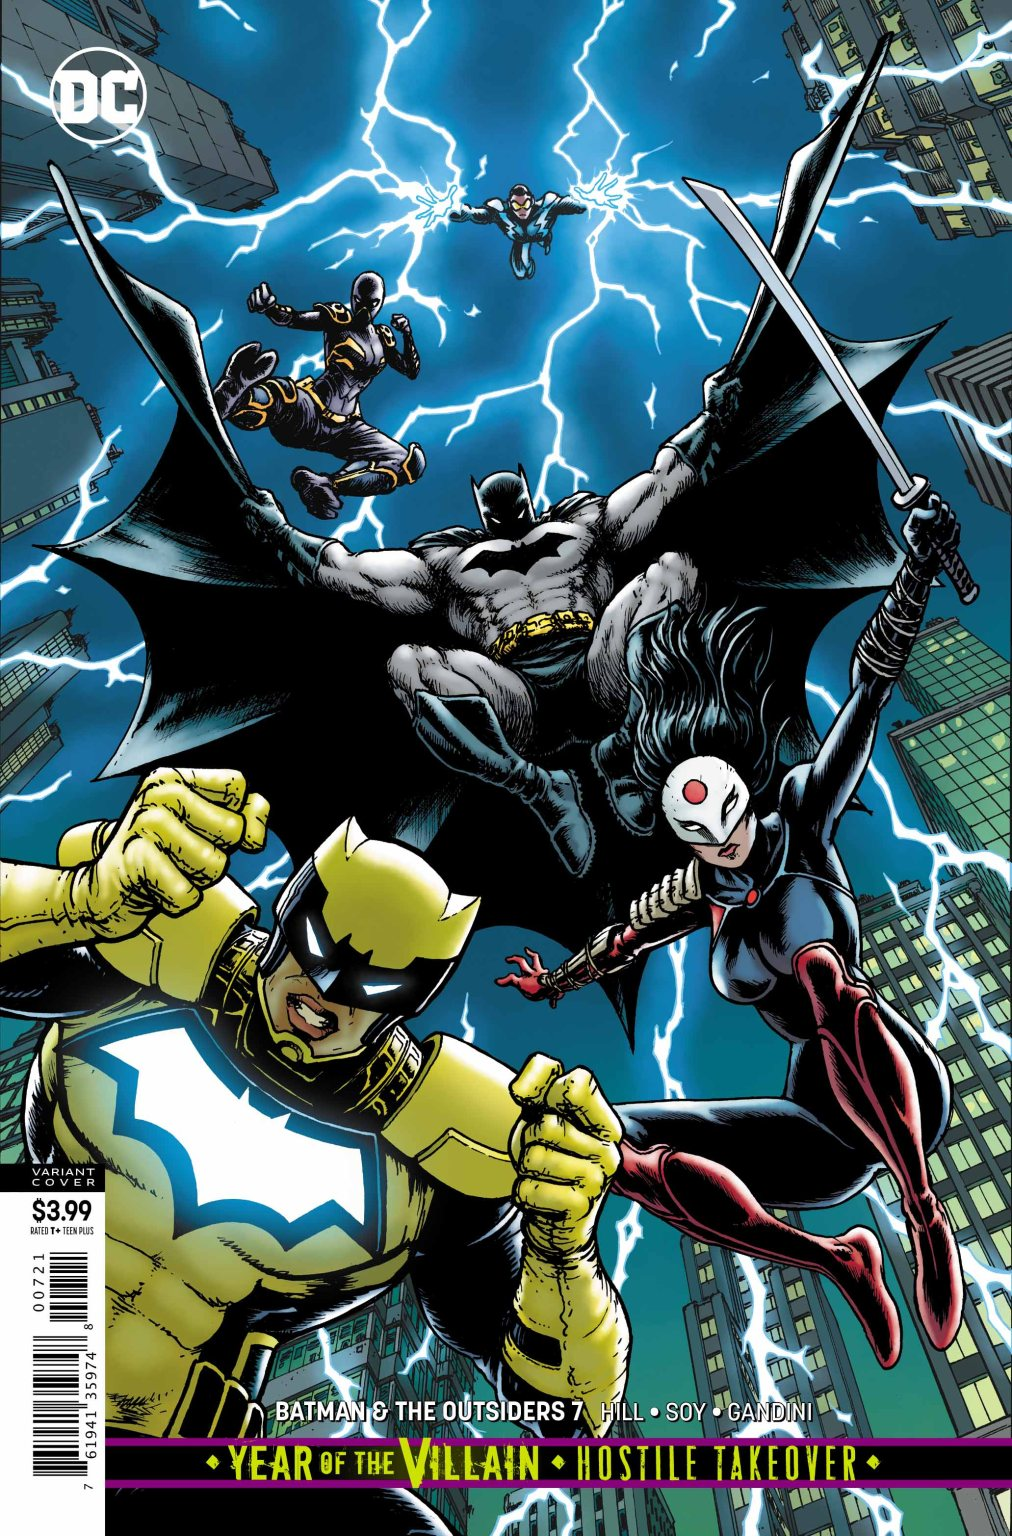 One of the best issues of the series due to its refined focus on two conflicts.